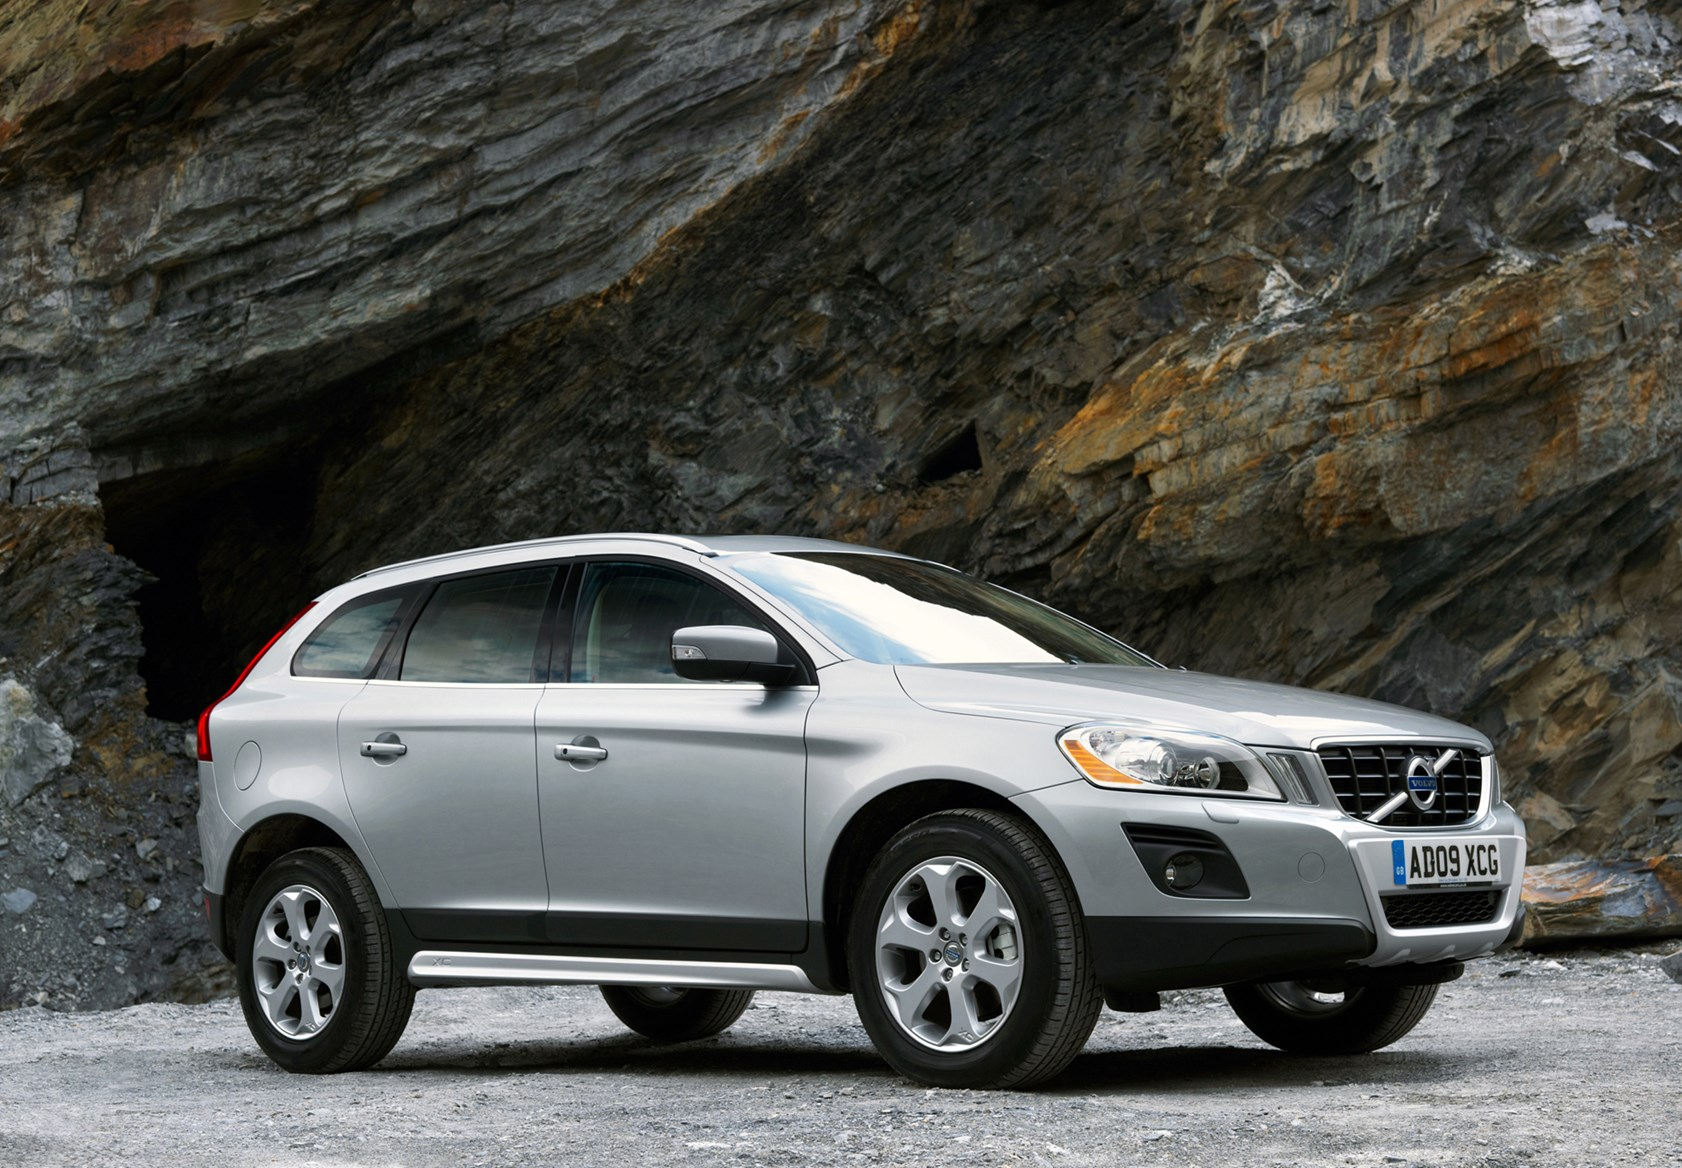 volvo xc60 estate review 2008 parkers. Black Bedroom Furniture Sets. Home Design Ideas